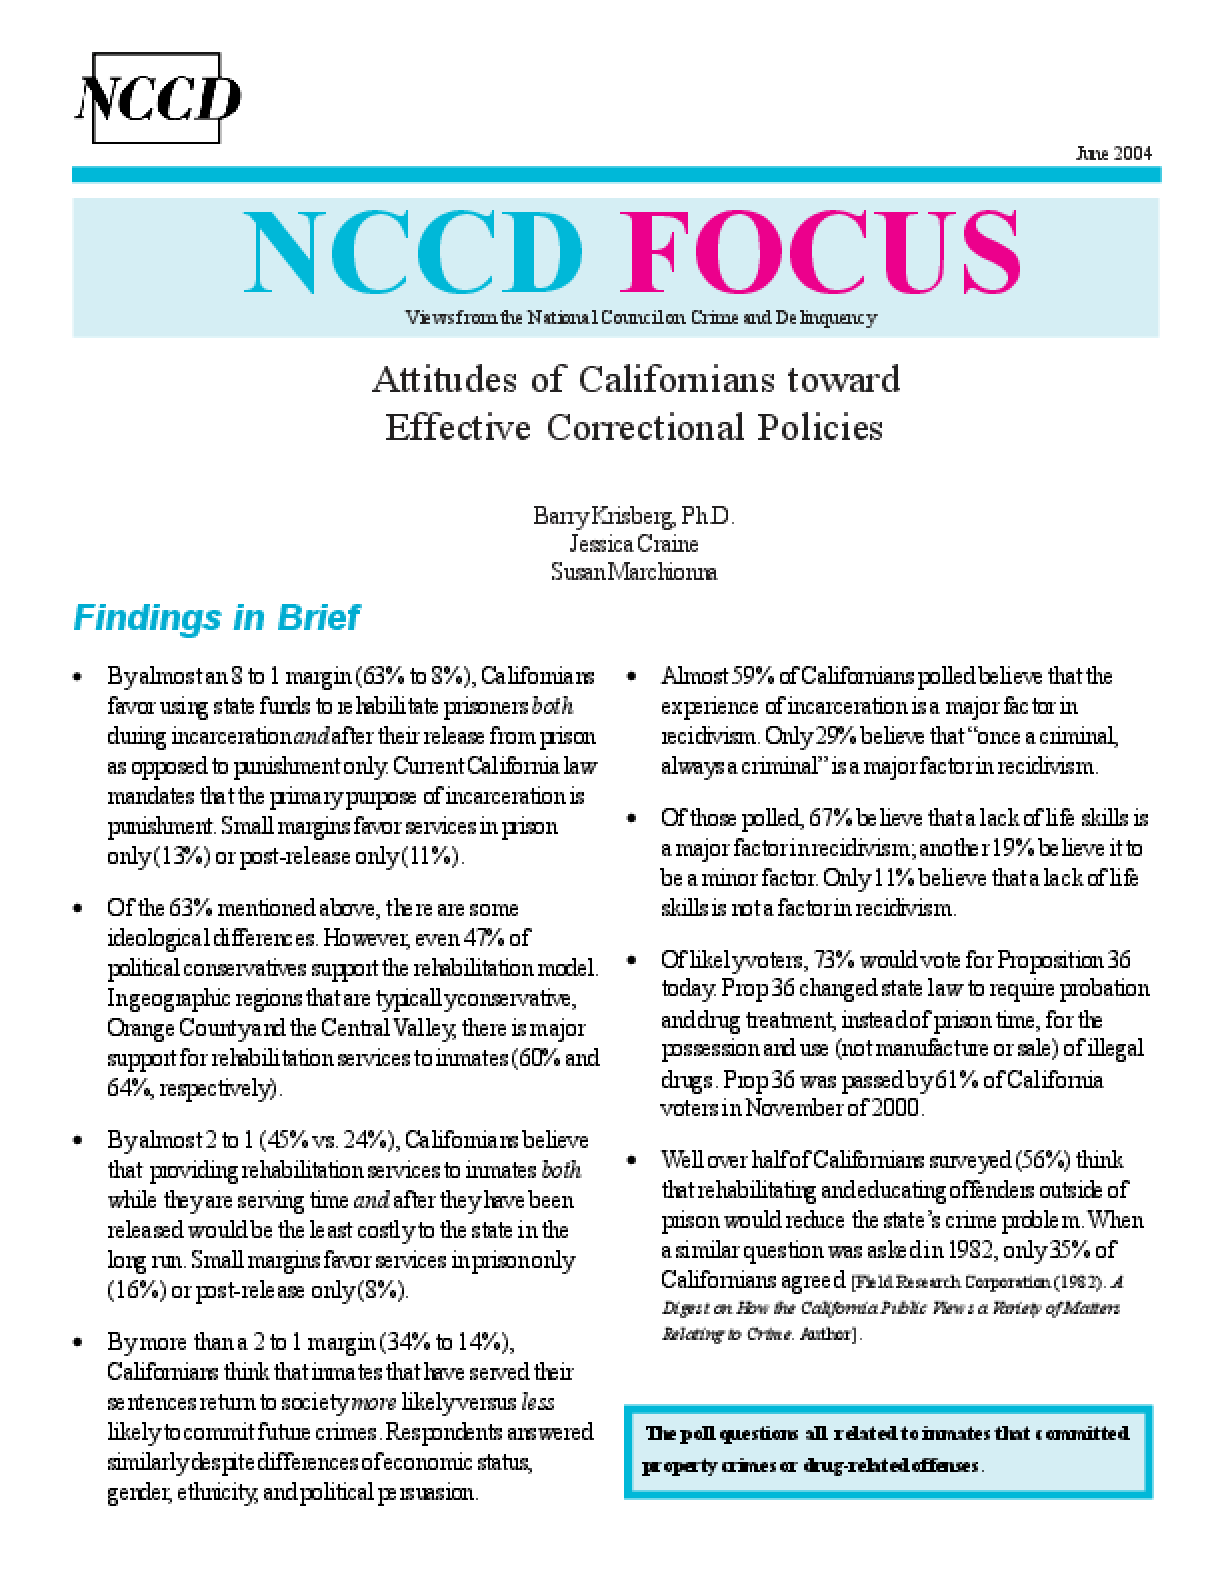 Attitudes of Californians Toward Effective Correctional Policies (FOCUS)